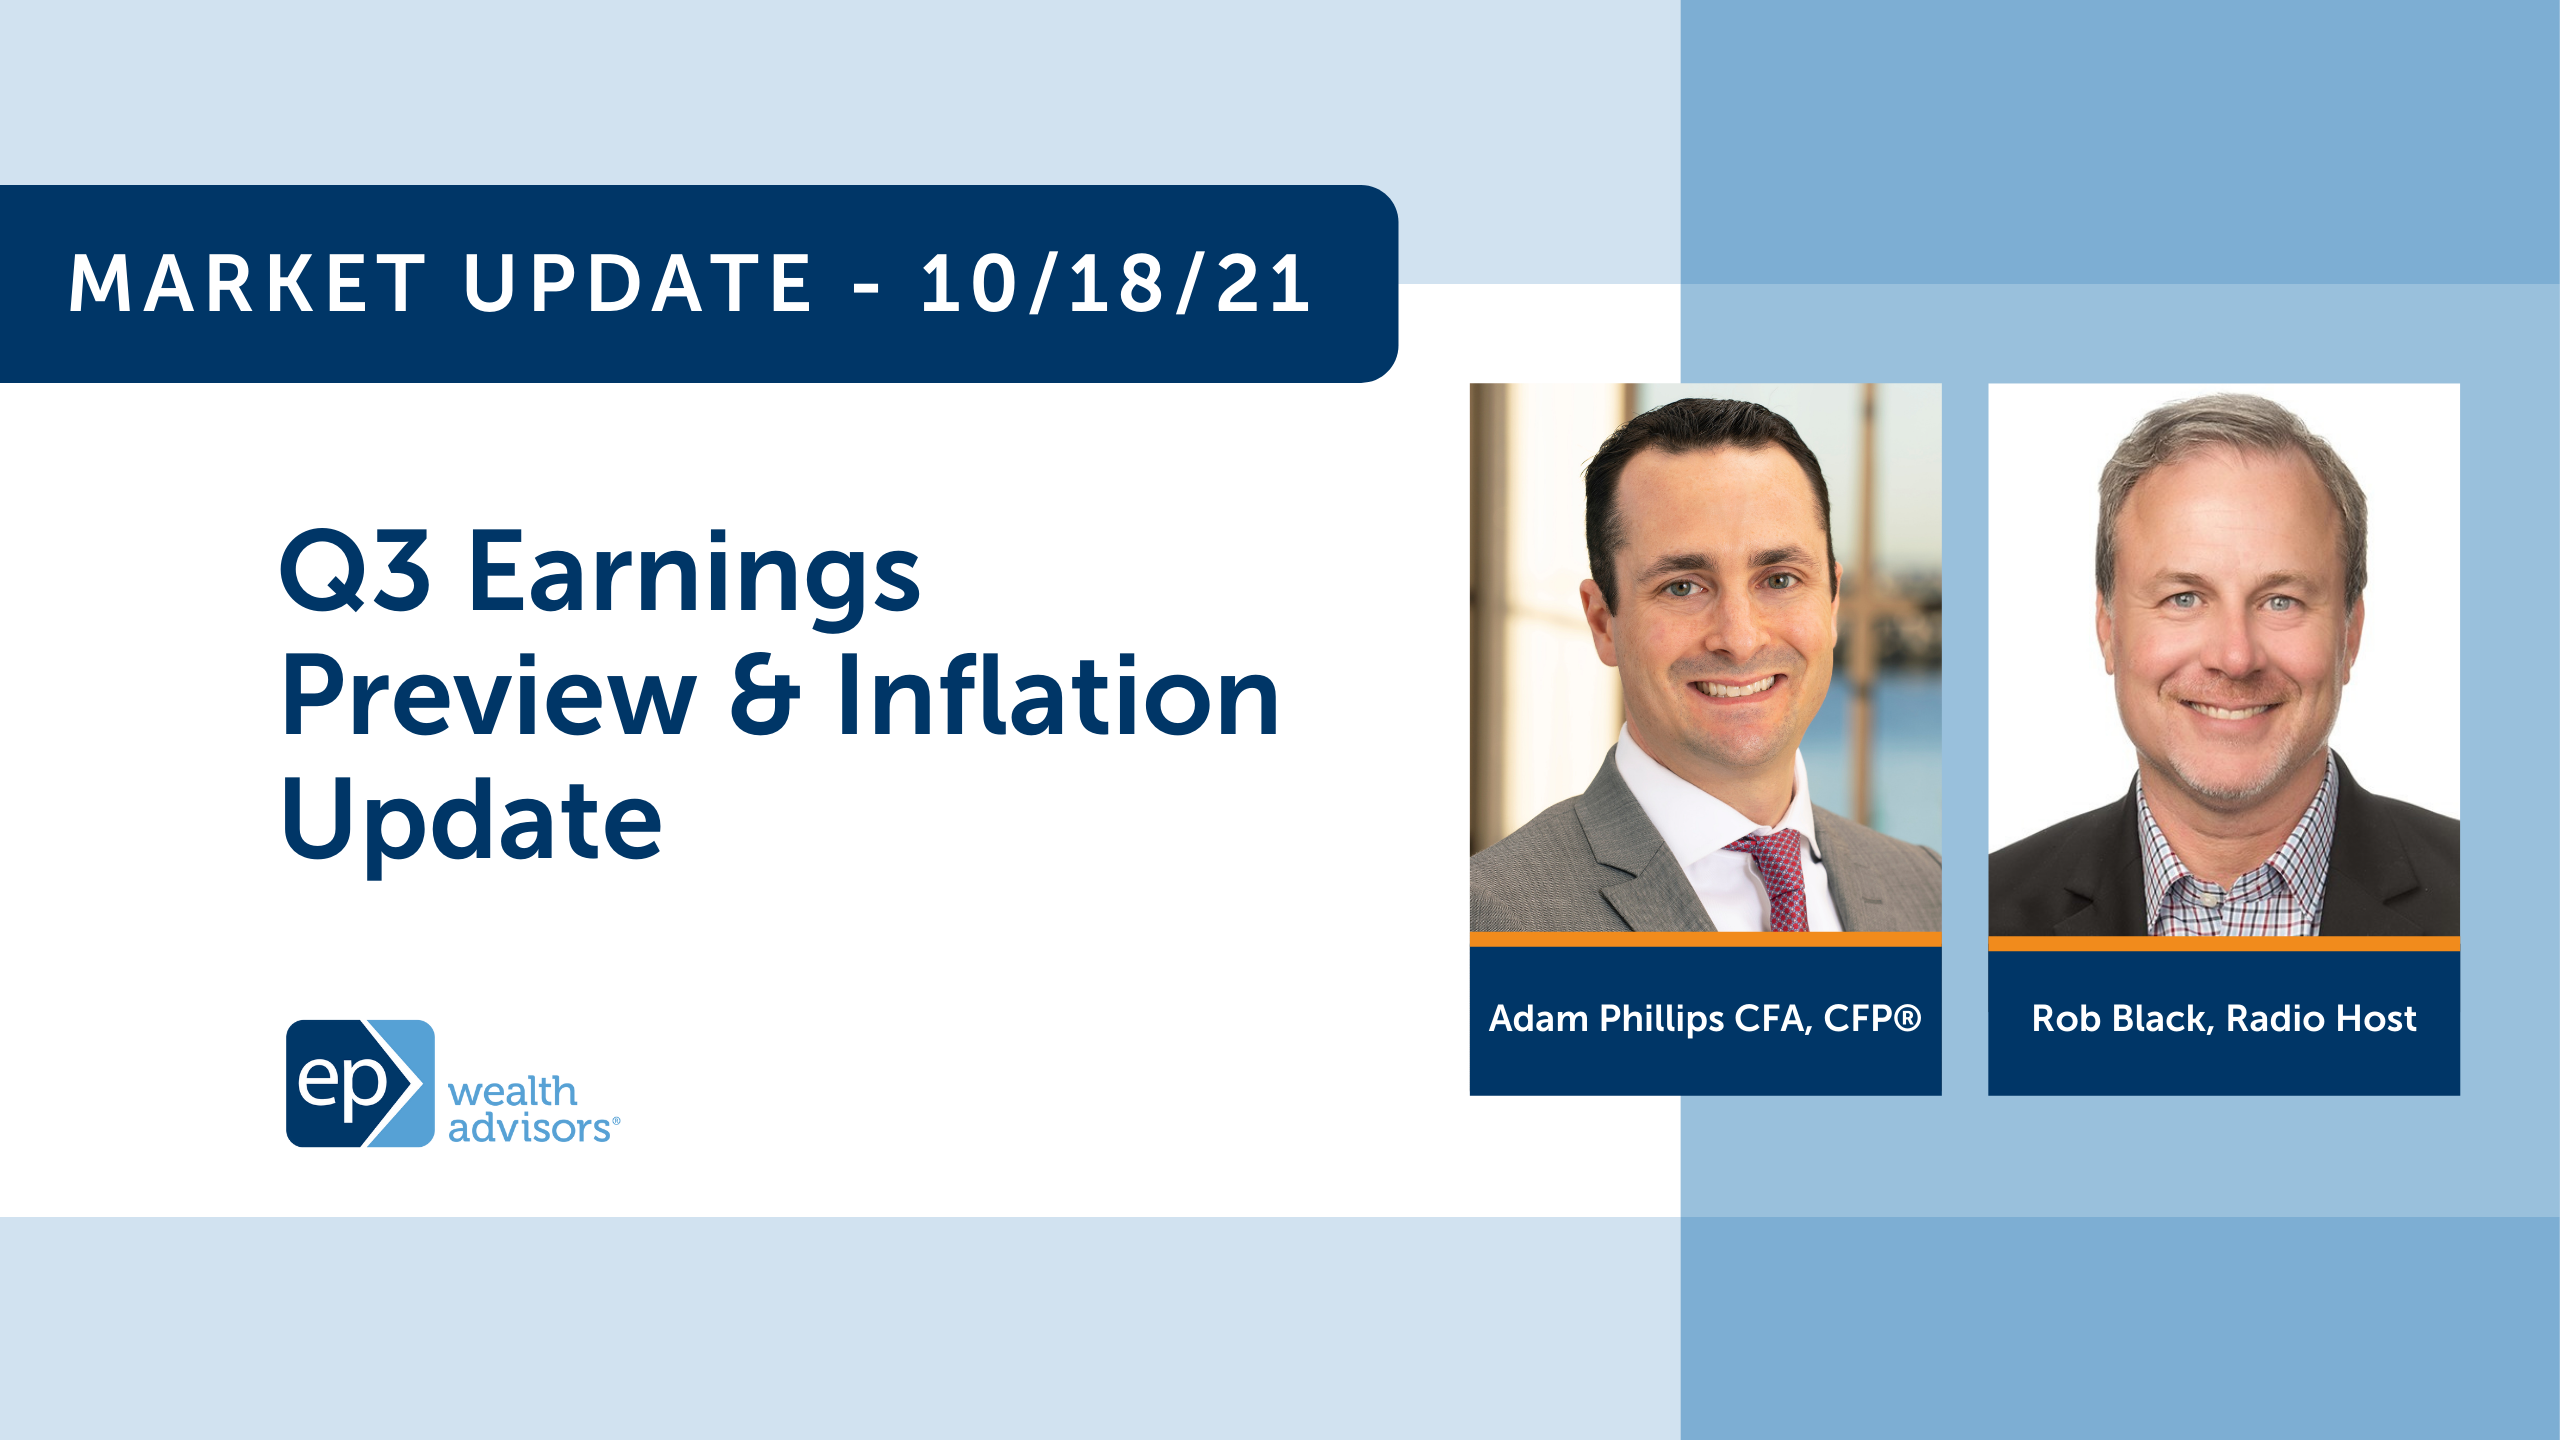 Q3 Earnings Preview & Inflation Update | Market Update 10/18/21